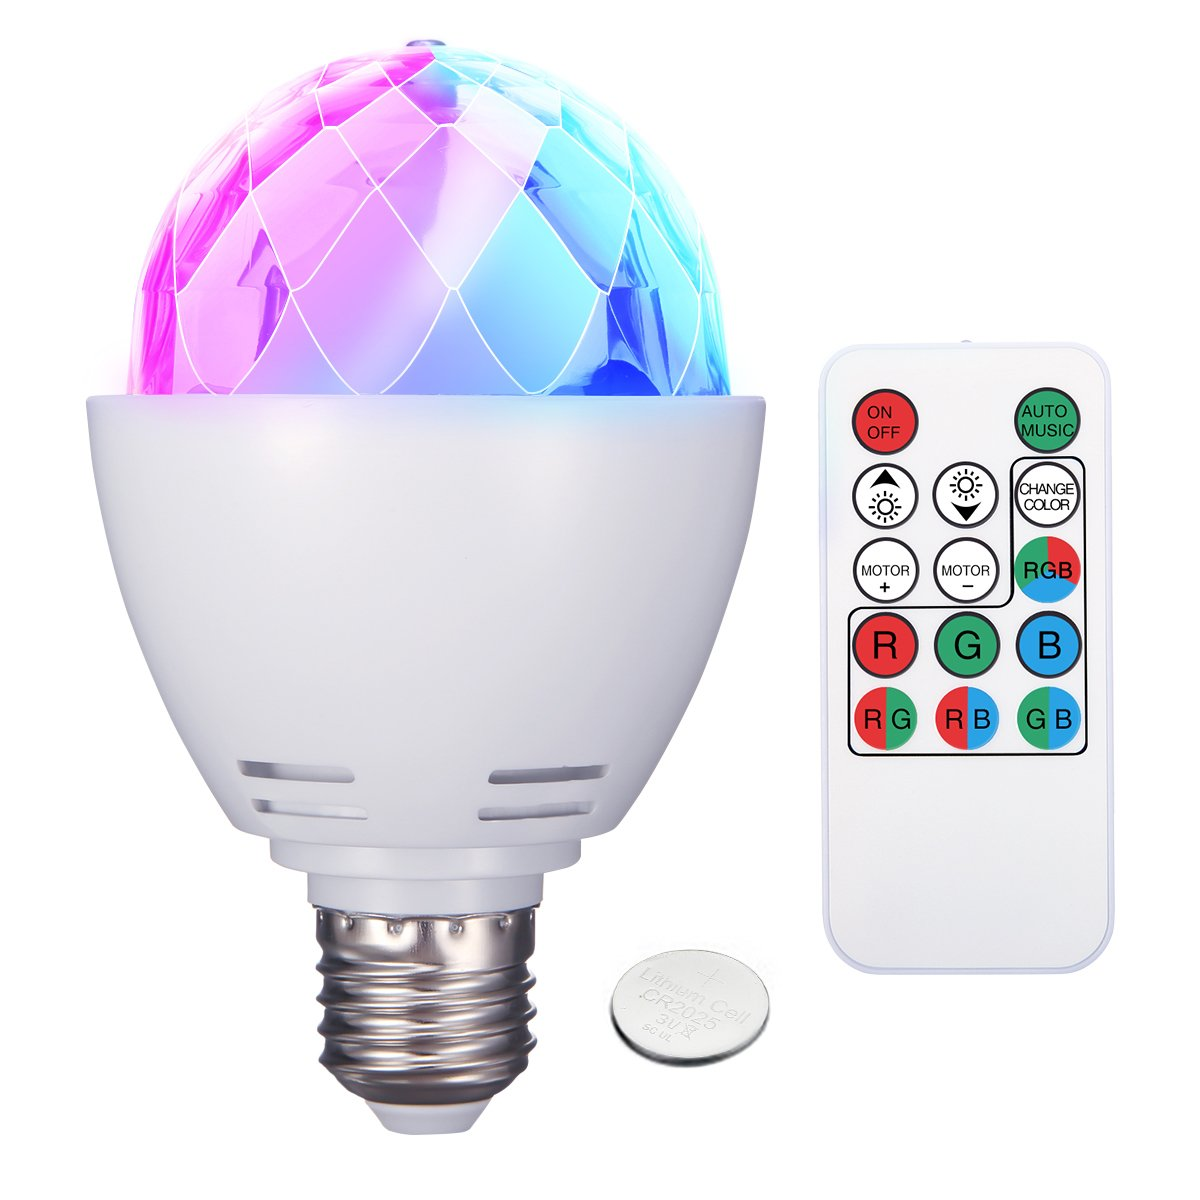 Disco Ball Lights, ELEGIANT 3W E27 RGB DJ Ball Lamp Rotating LED Stage Lights for Disco Party Bar Club Dj Show Wedding Ceremony Stage Effect Light with Remote Control Battery Included